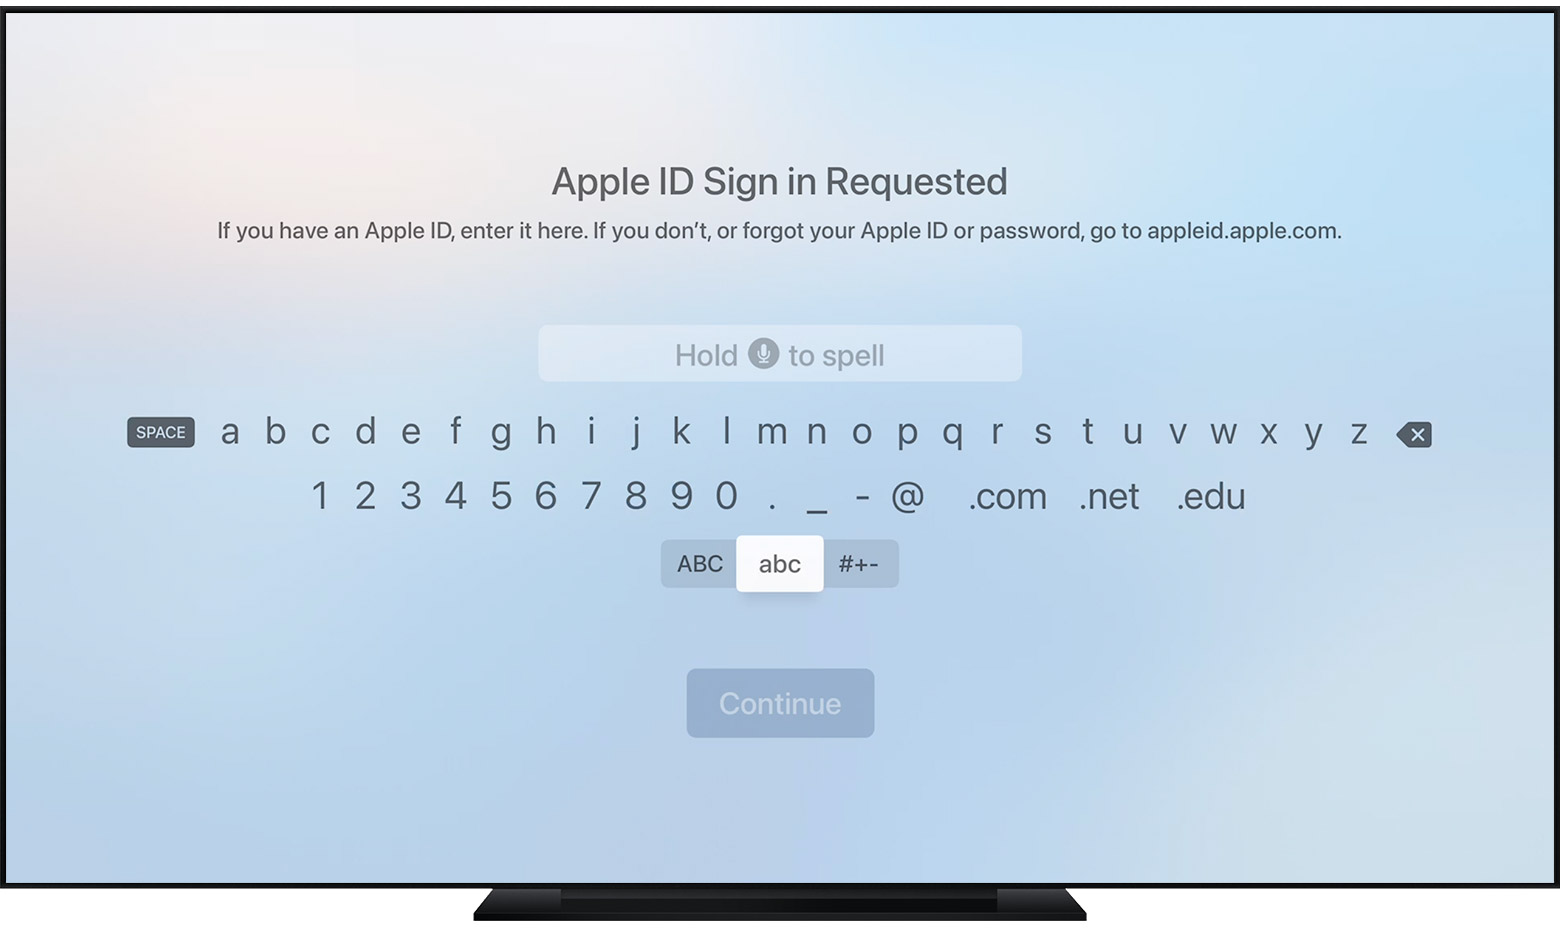 A screenshot on Apple TV shows a text field with an onscreen keyboard below it.